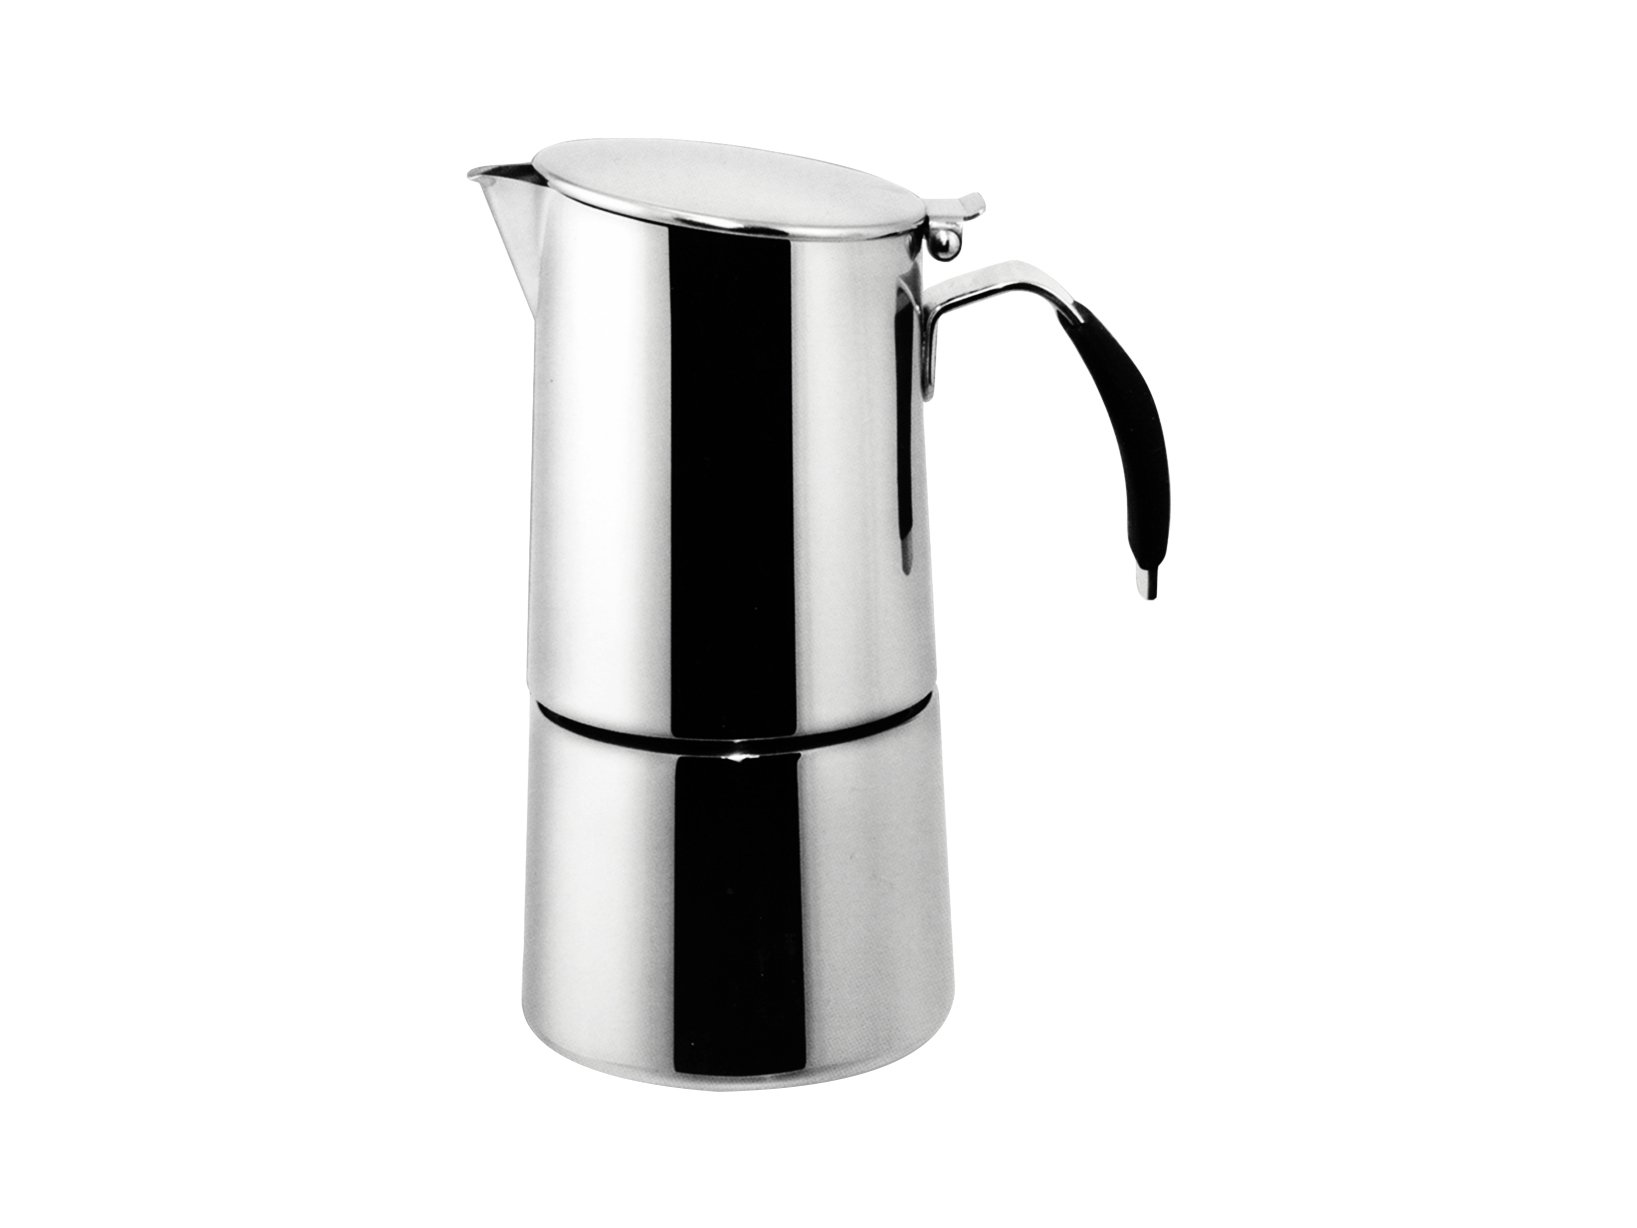 Ilsa: Coffee Maker ''Omnia Express'' For Induction - Inox 18/10 4-Cup [ Italian Import ] by Ilsa